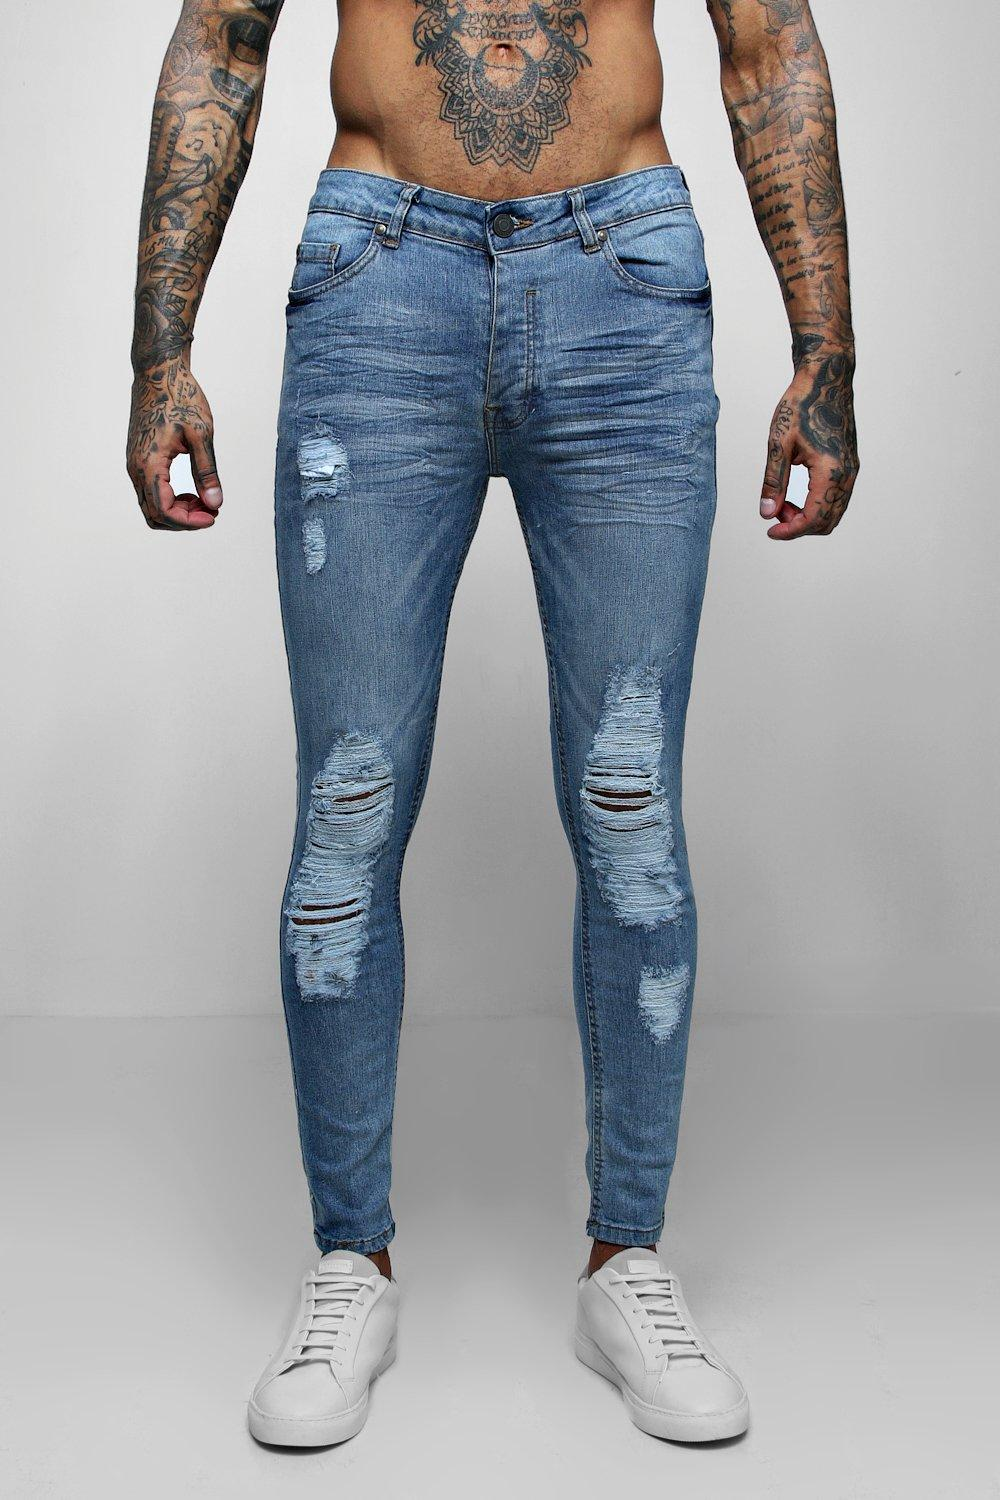 With washed Jeans blue Knees Distressed Skinny Fit ERBUqBp